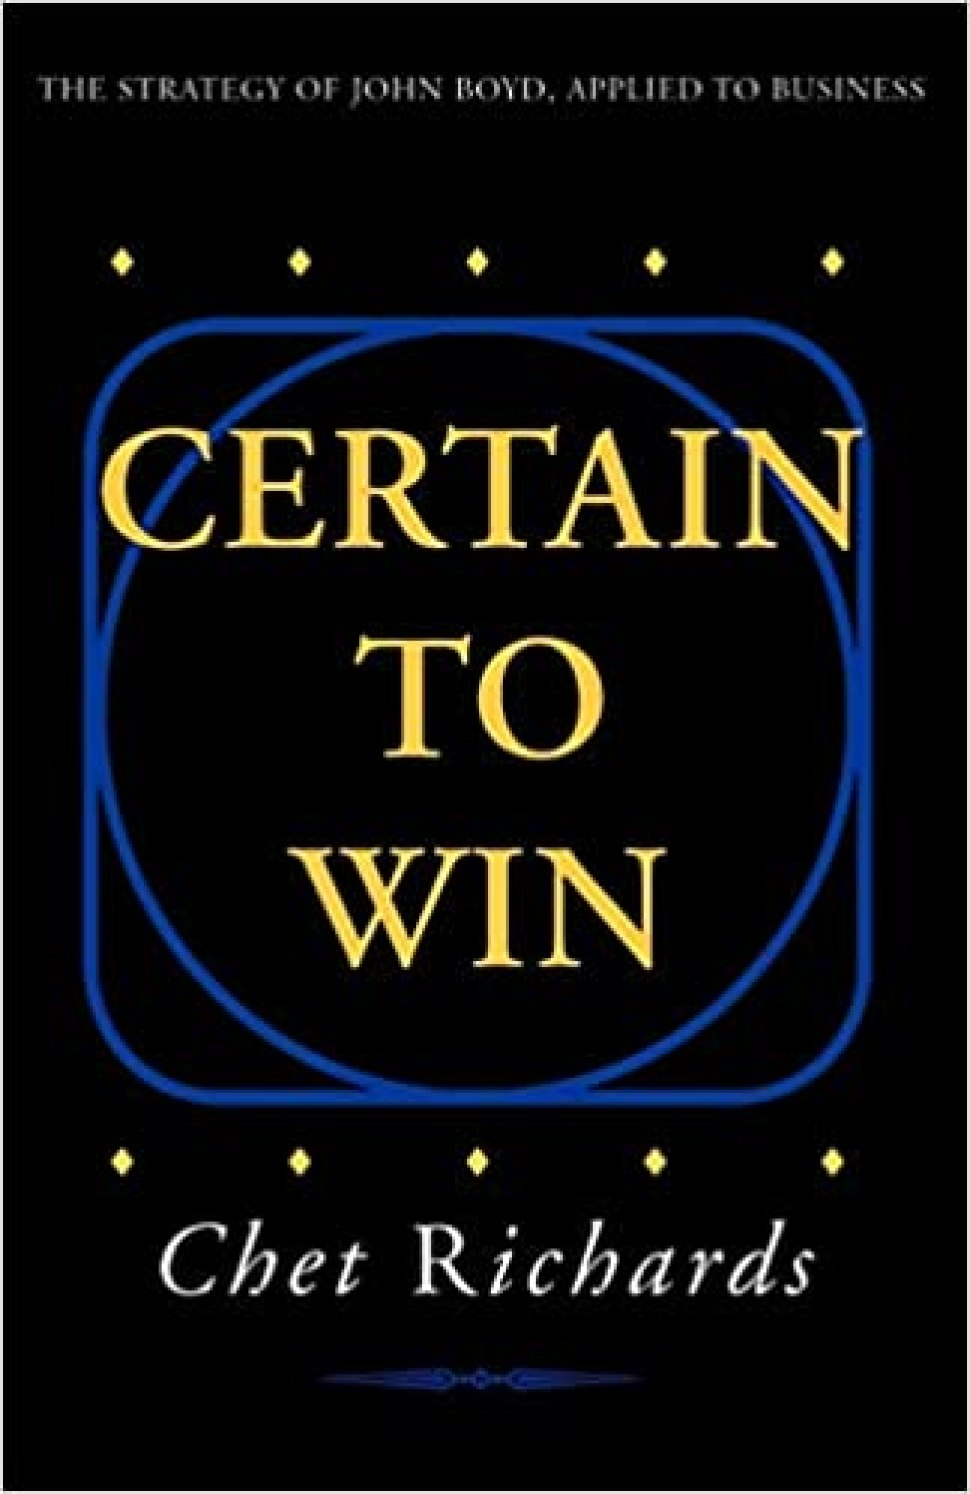 Amazon.com: Certain to Win: The Strategy of John Boyd, Applied to Business (9781413453768): Richards, Chet: Books